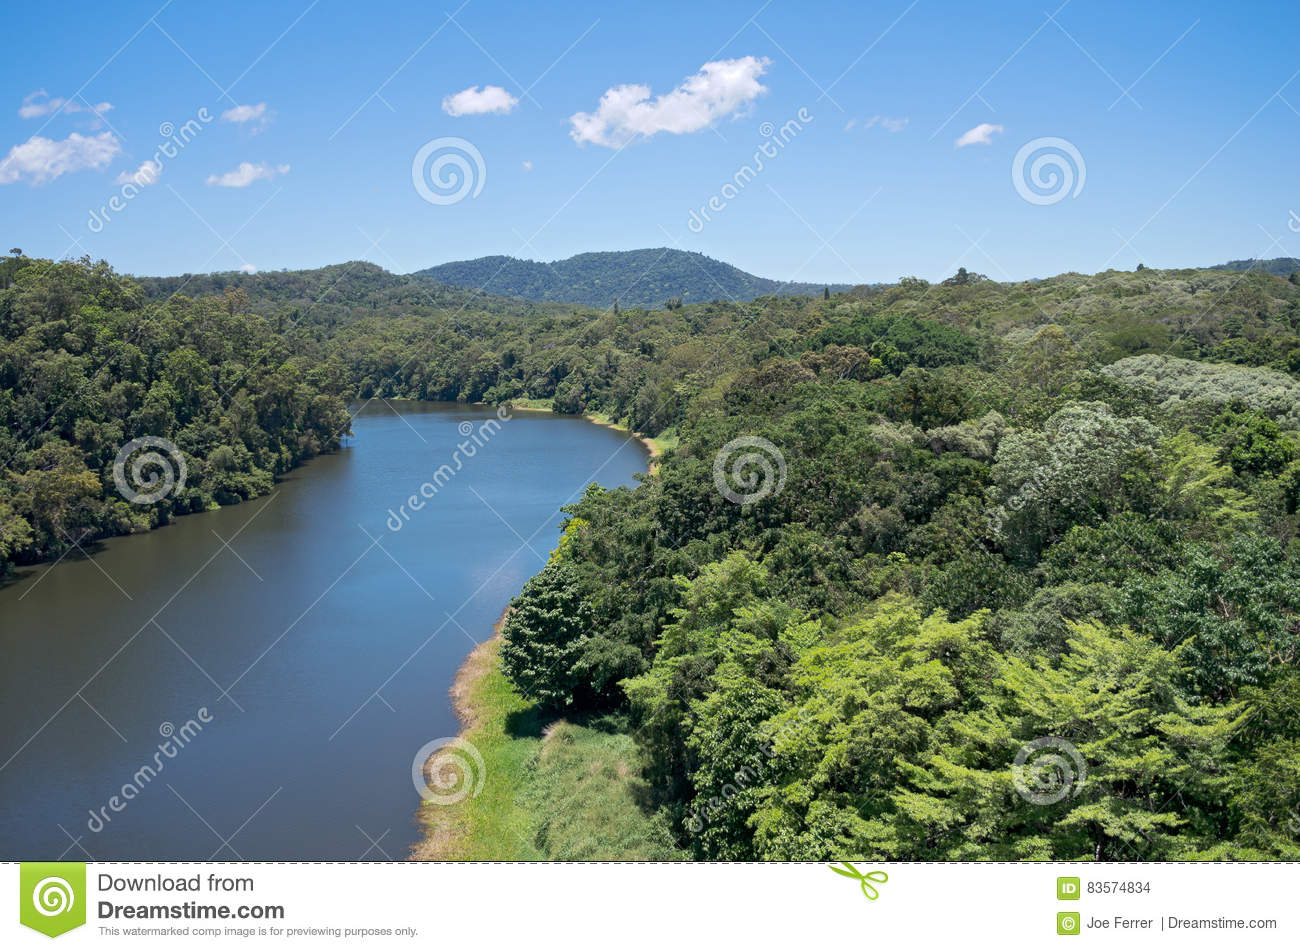 Barron River och Rainforest